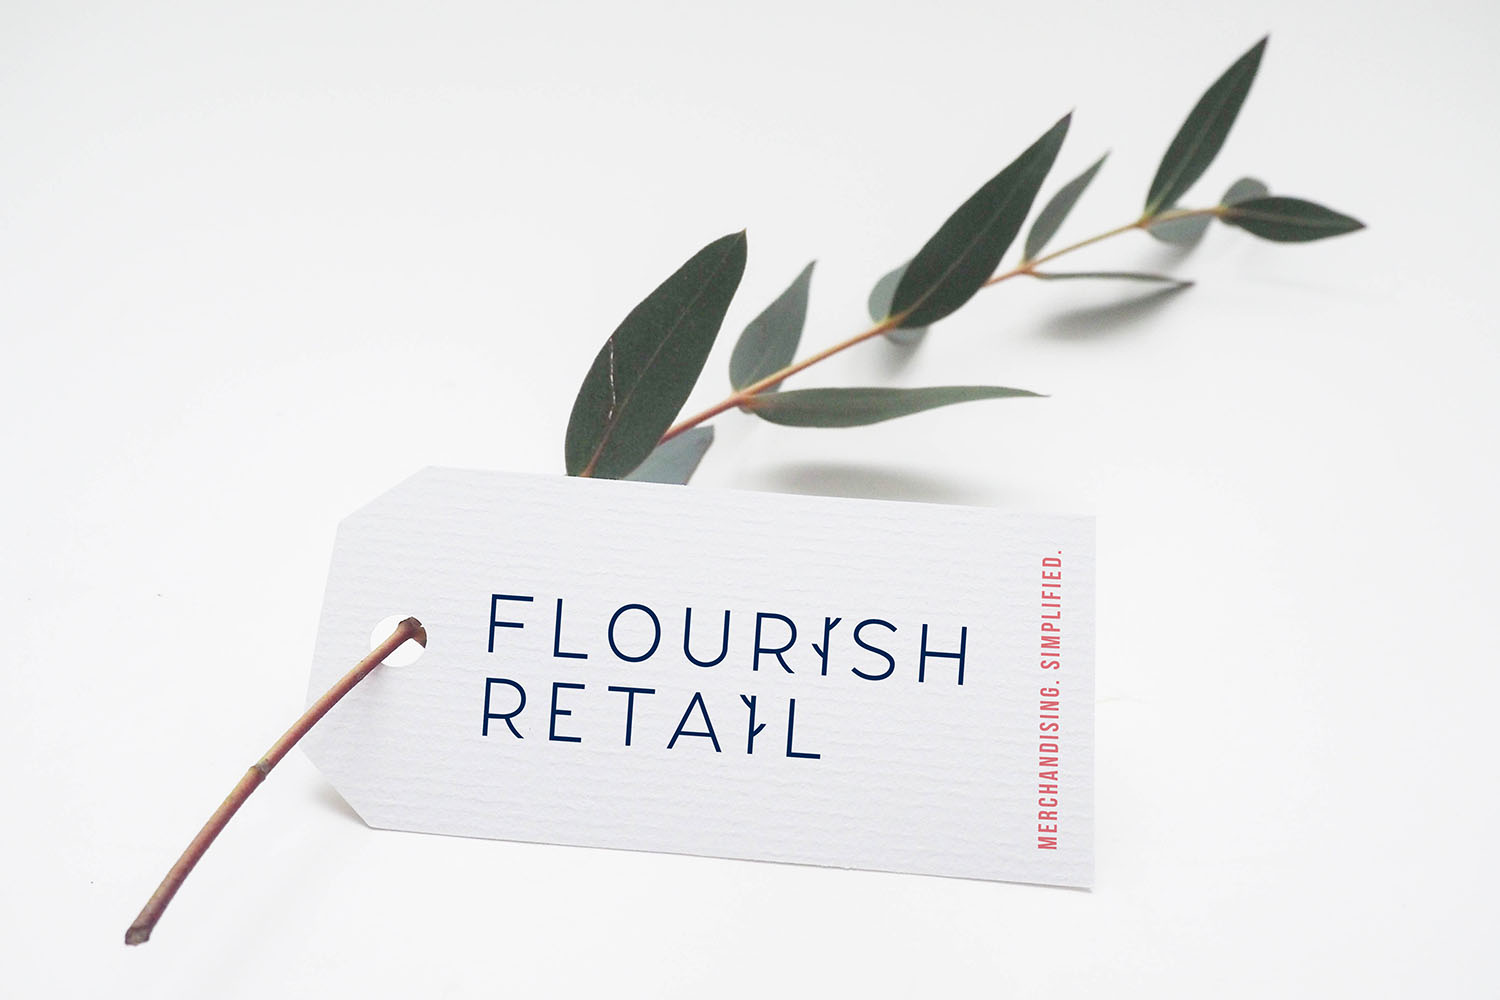 Portfolio project: Flourish Retail swing label design | Beehive Green Design Studio